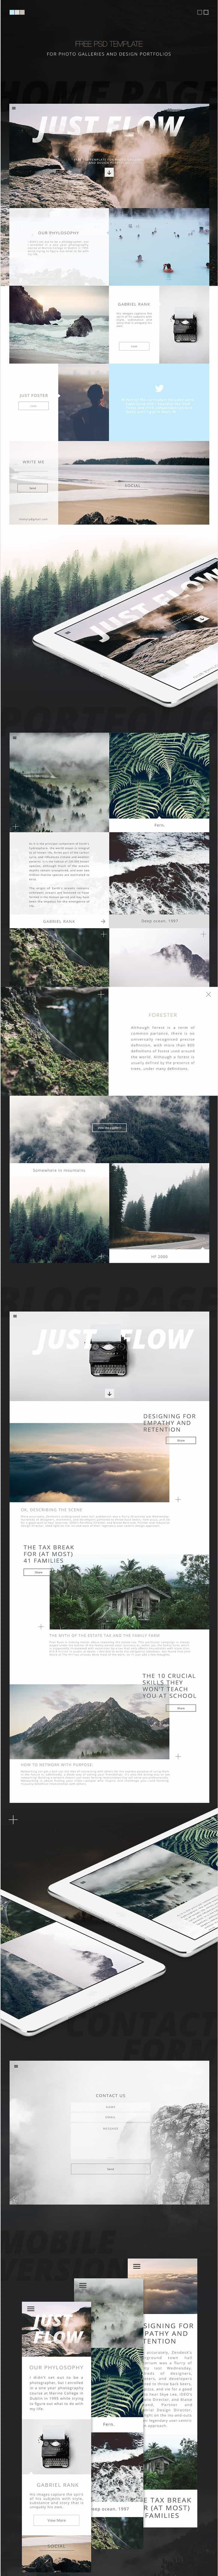 Daily Freebie: Unique Web Template for Photo Galleries and Design Portfolios (PSD)